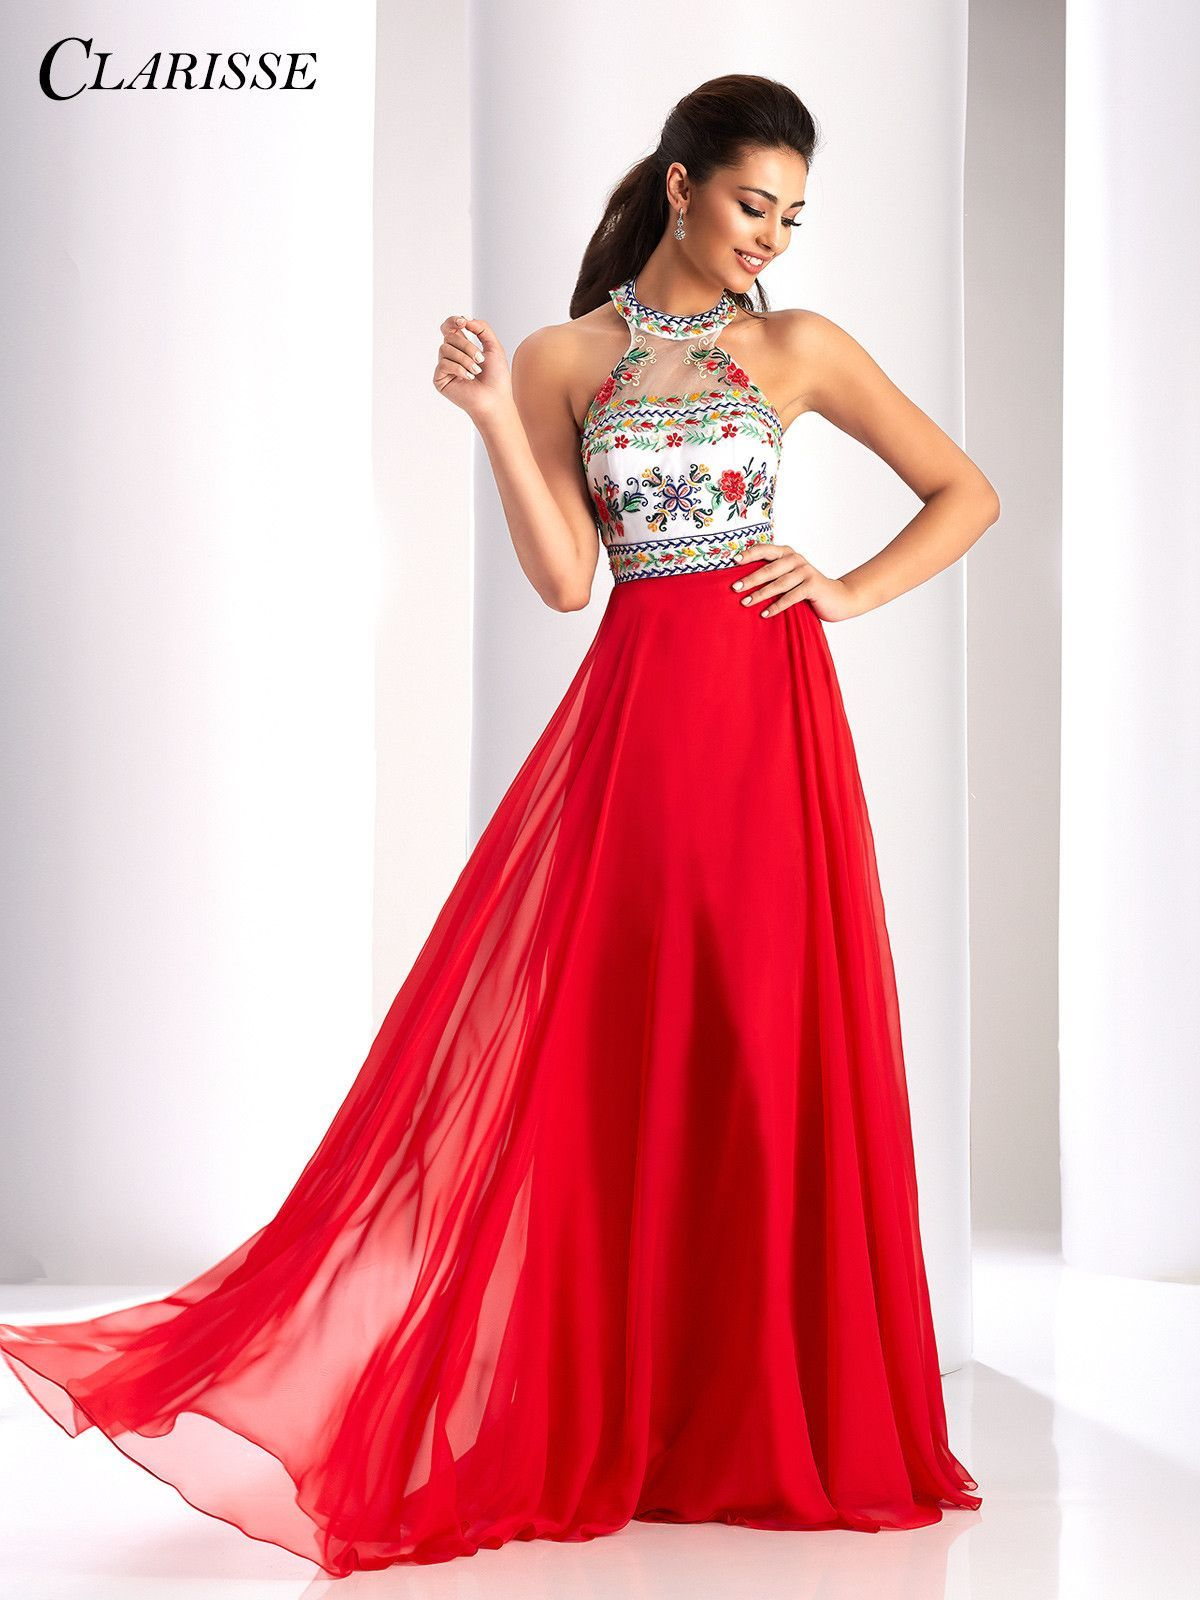 You will definitely stand out in this fun and flirty chiffon prom